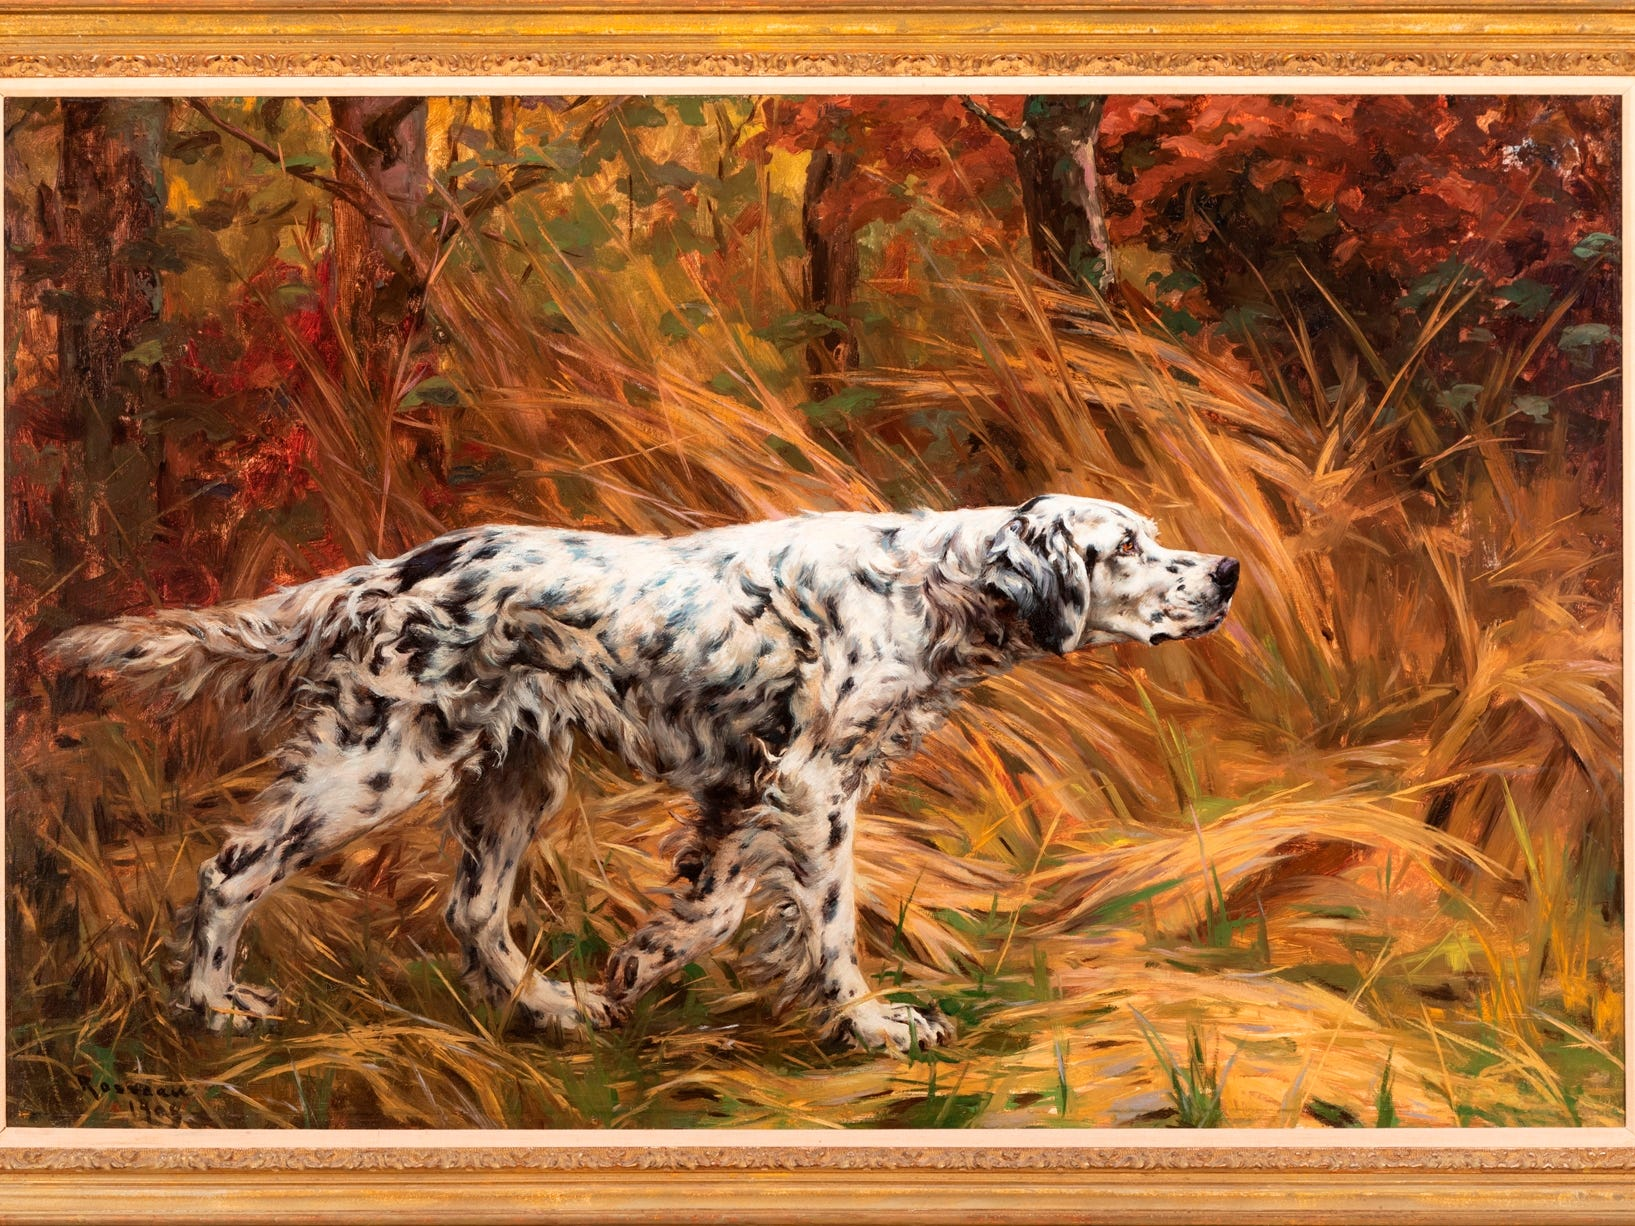 The American Kennel Club Museum of the Dog is moving from St. Louis to New York. Its dog-friendly galleries will include hundreds of canine paintings, sculptures and porcelain figures.